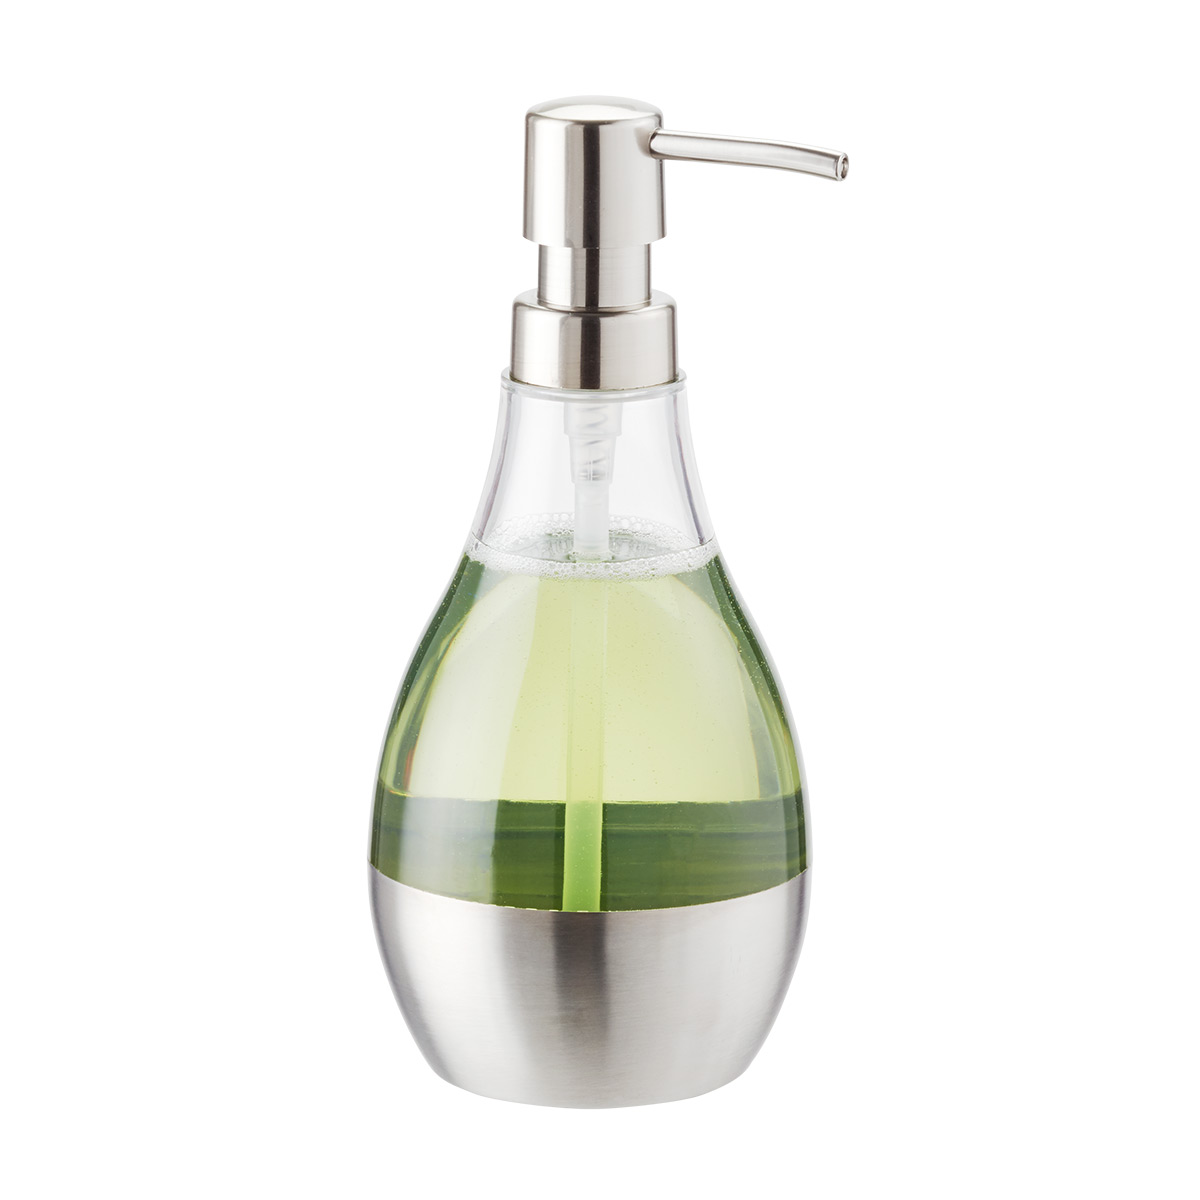 Umbra 10 oz. Teardrop Pump Dispenser